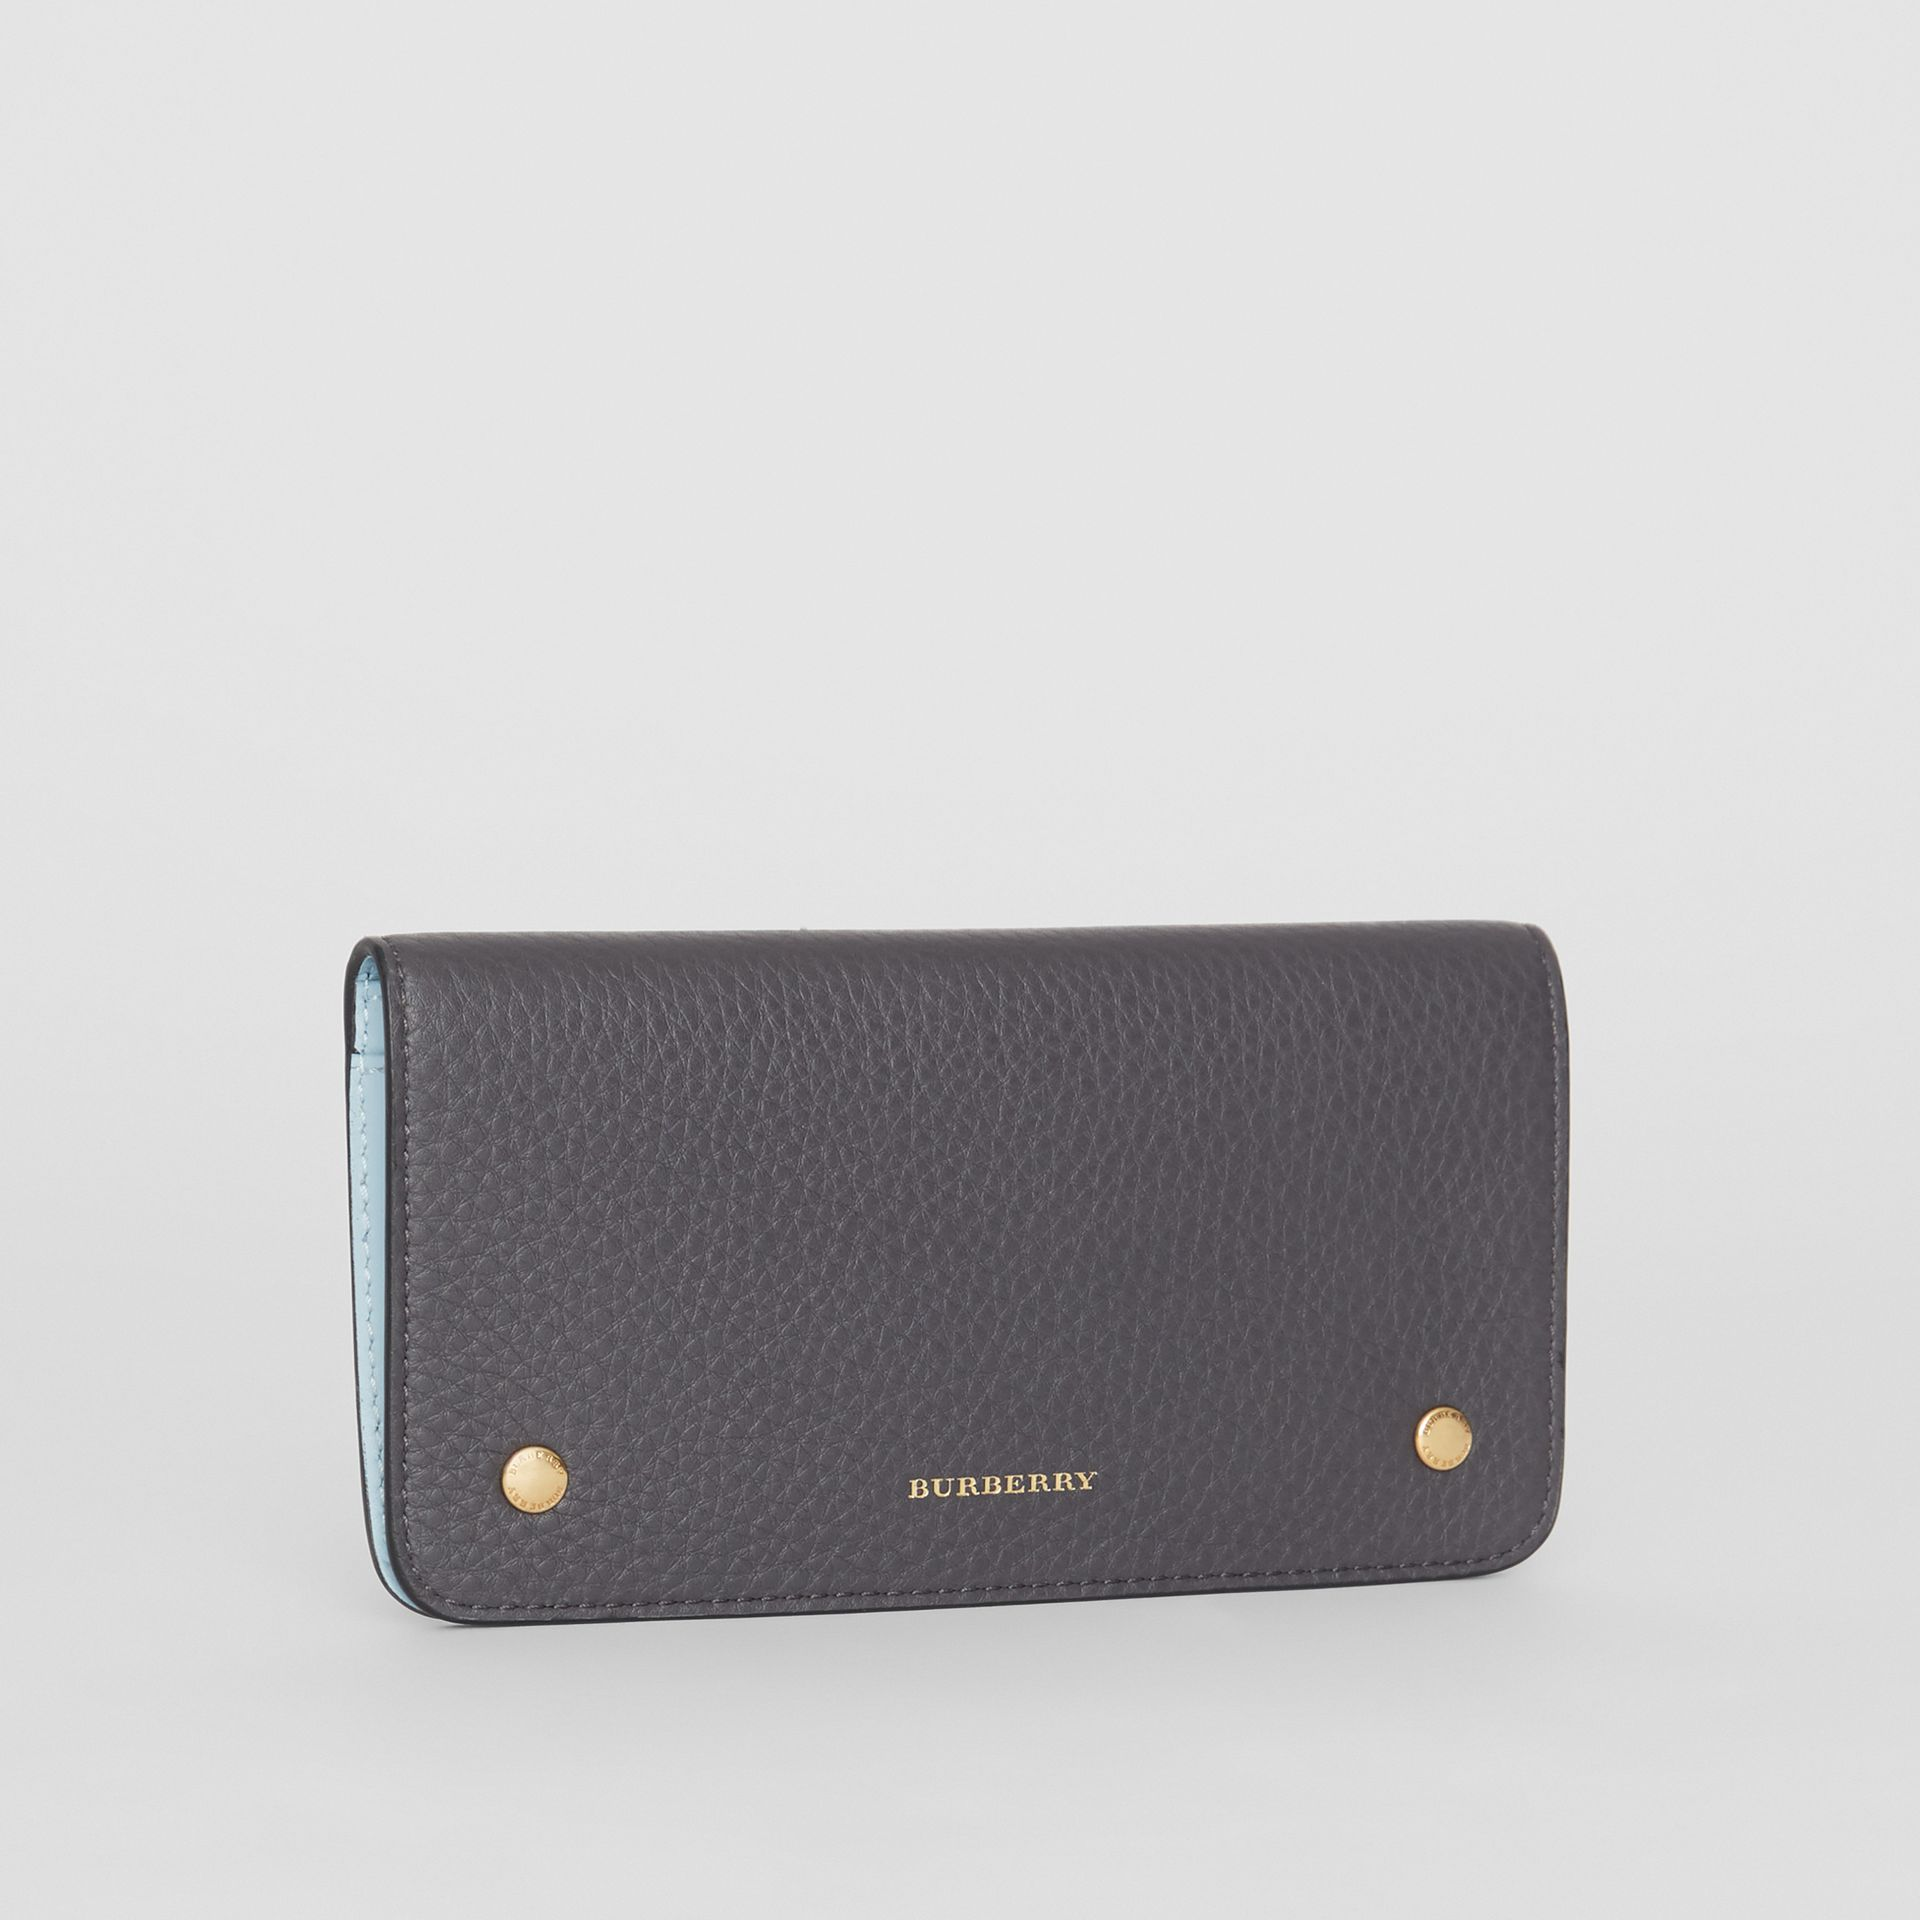 Leather Phone Wallet in Charcoal Grey - Women | Burberry - gallery image 4